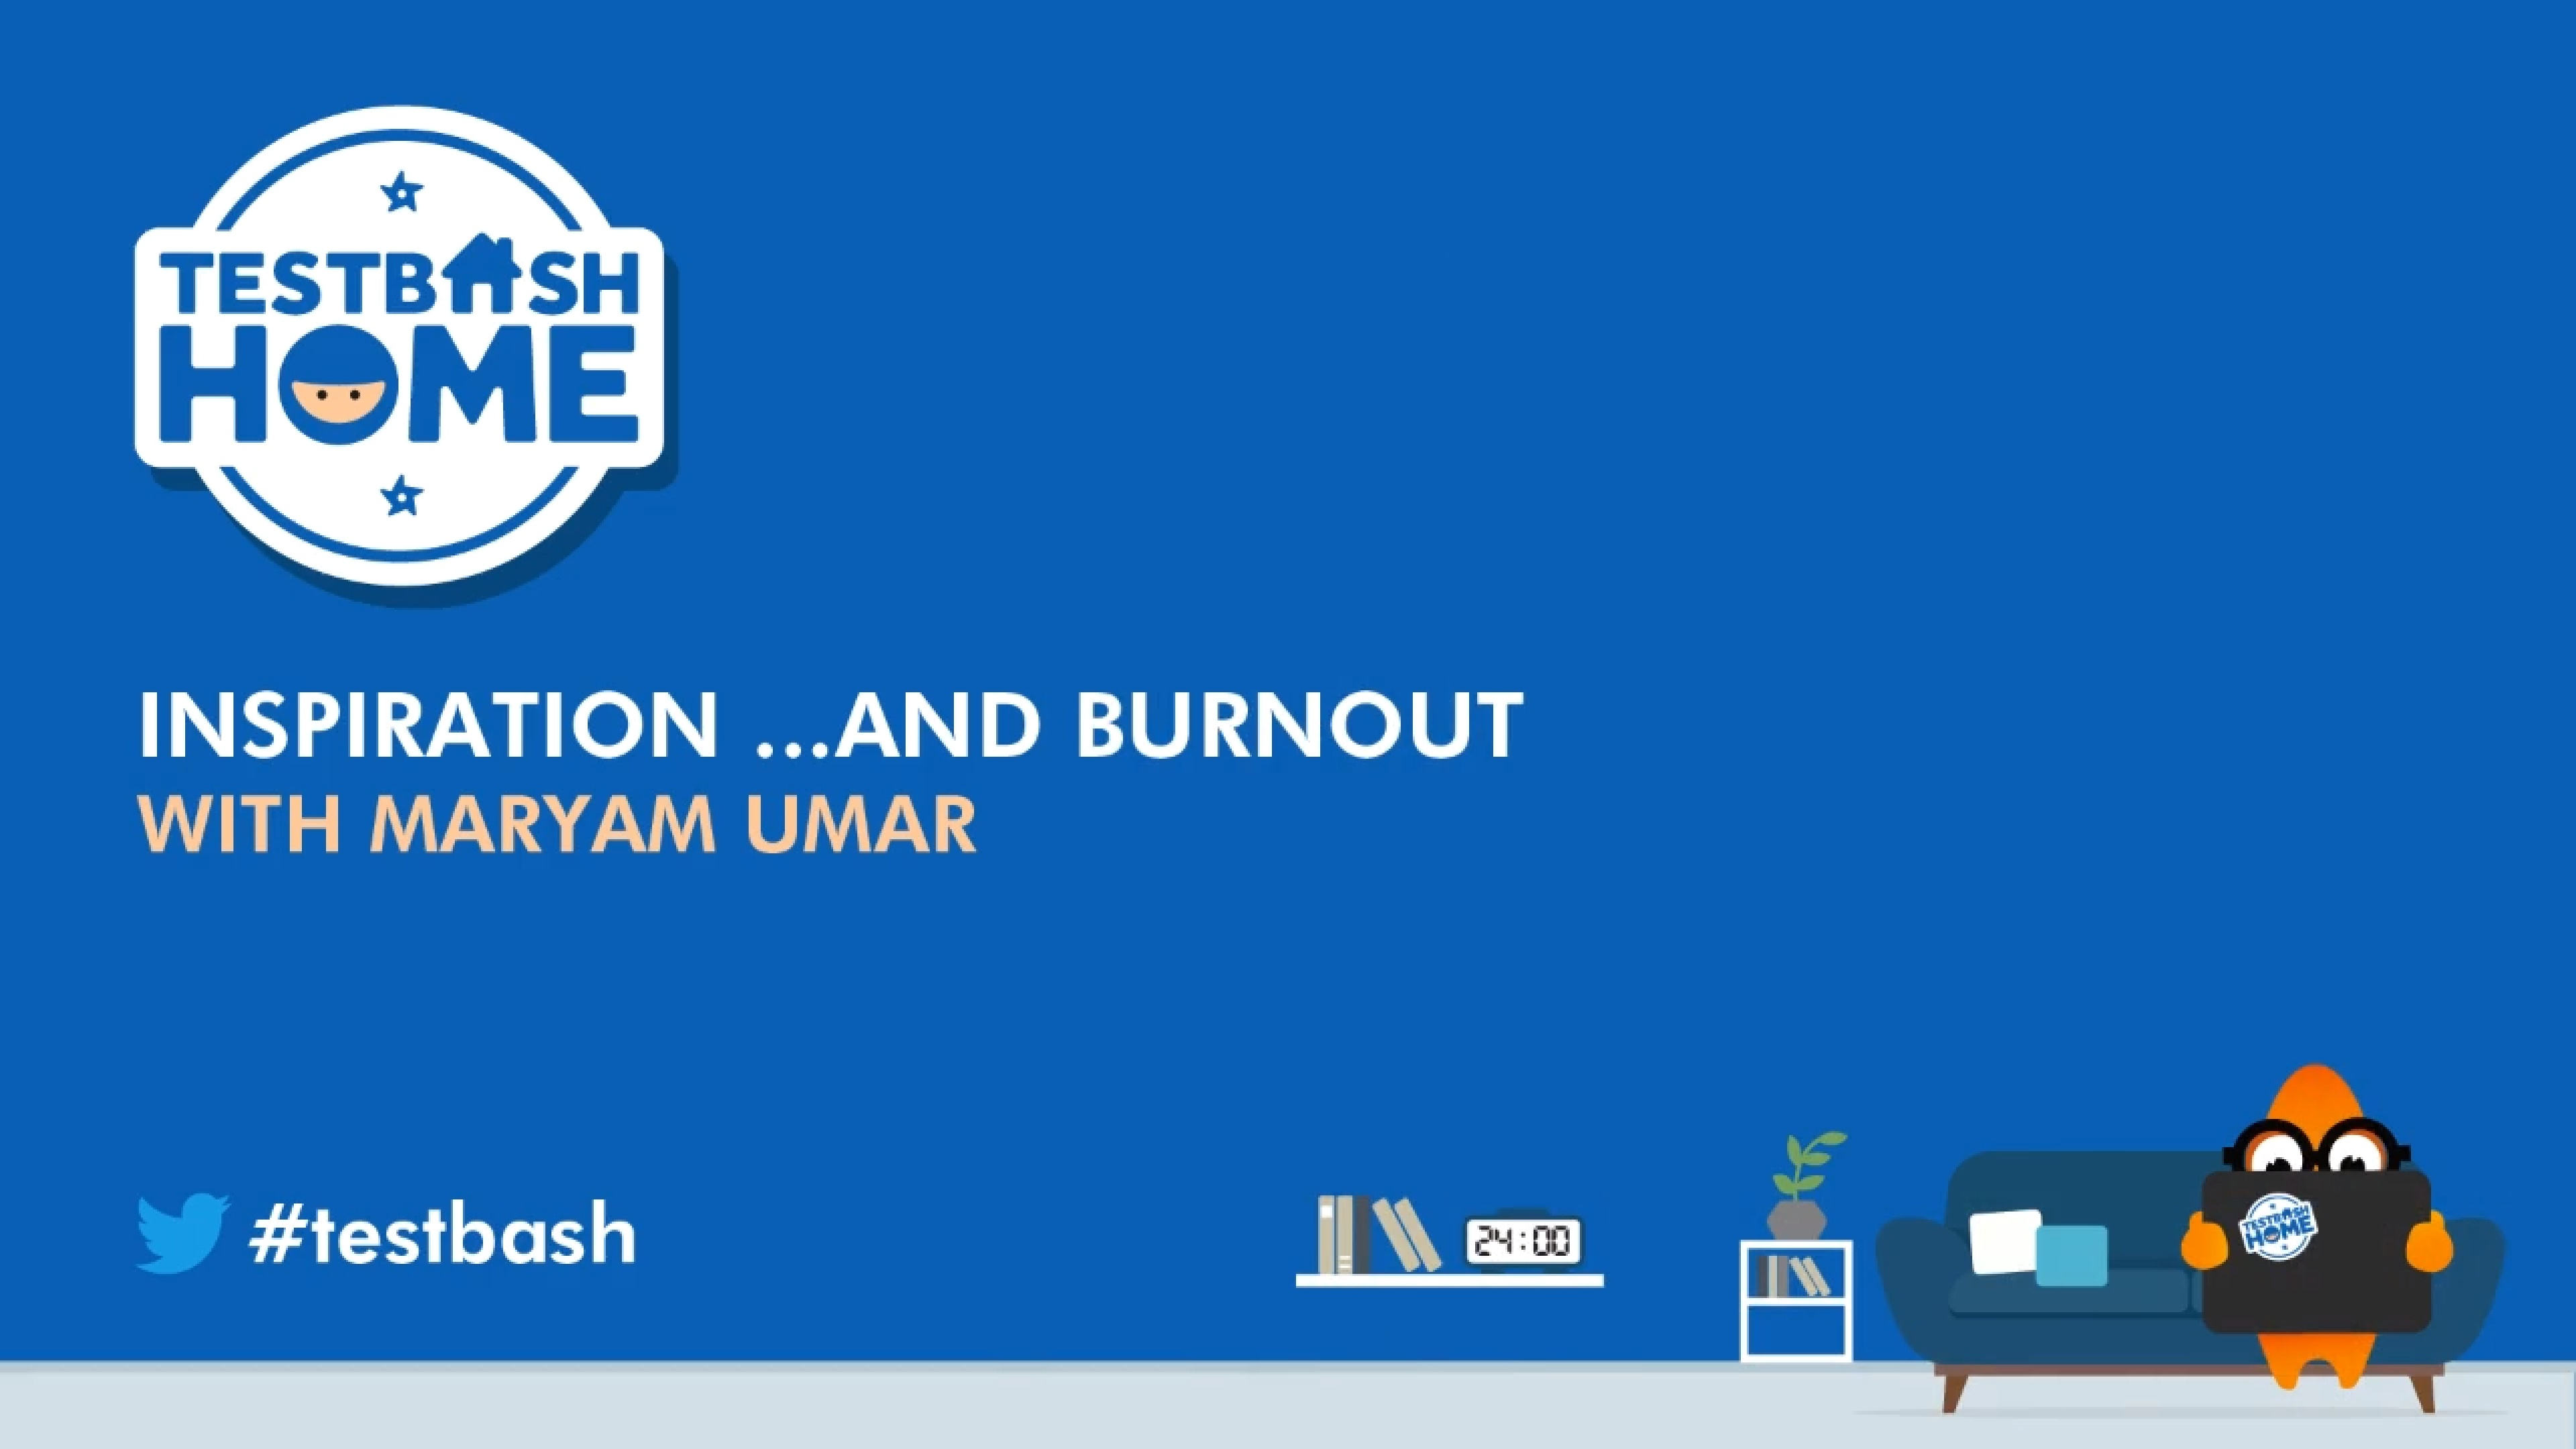 Inspiration ...and Burnout - Maryam Umar